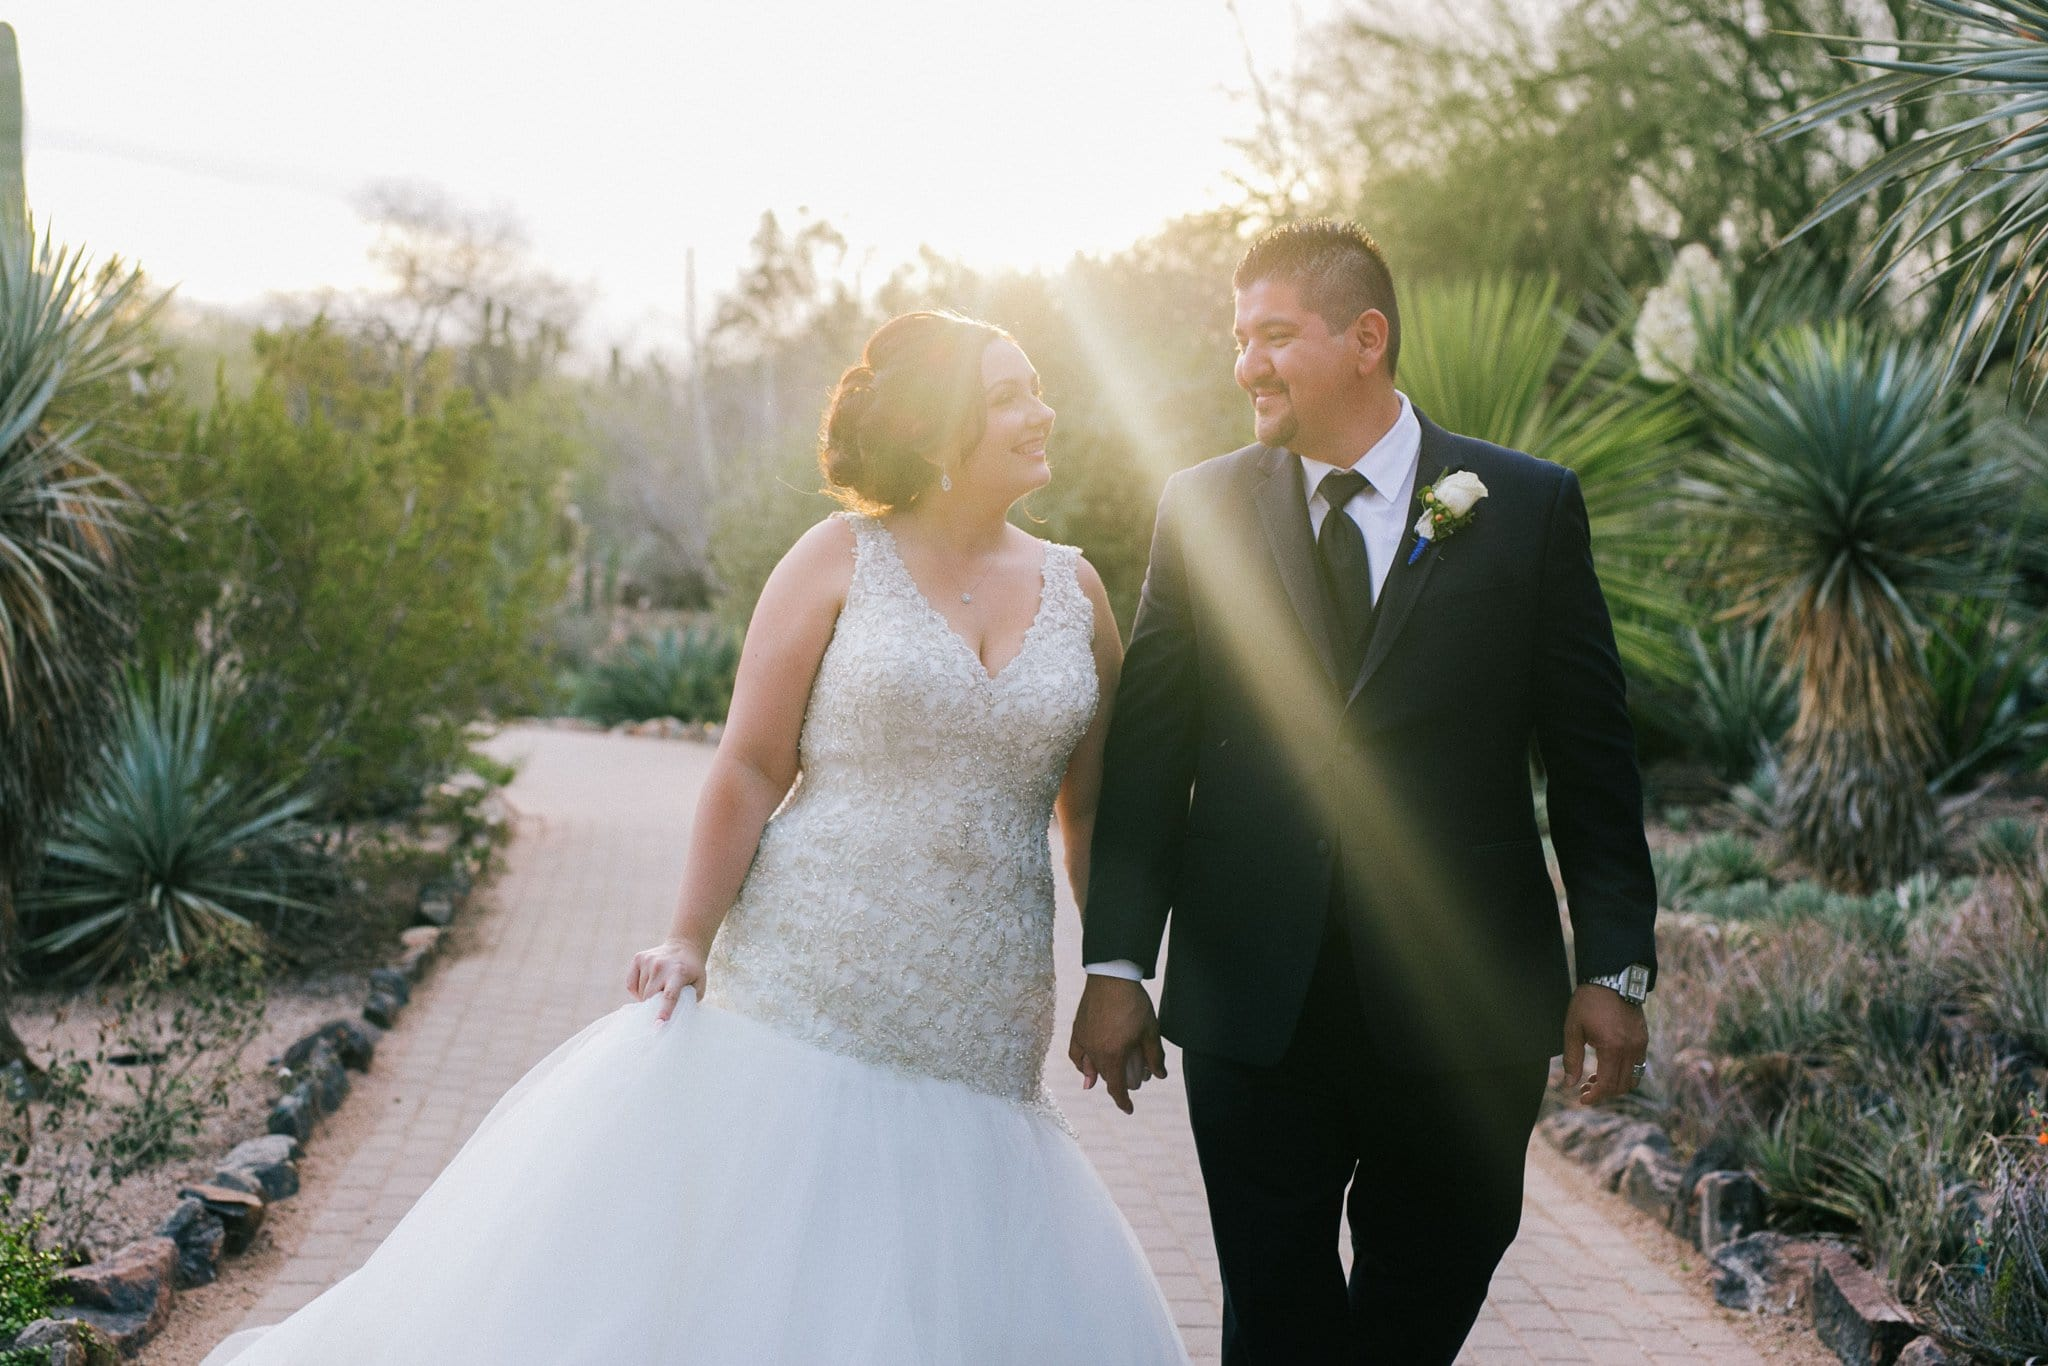 bride & groom at Desert Botanical Garden wedding